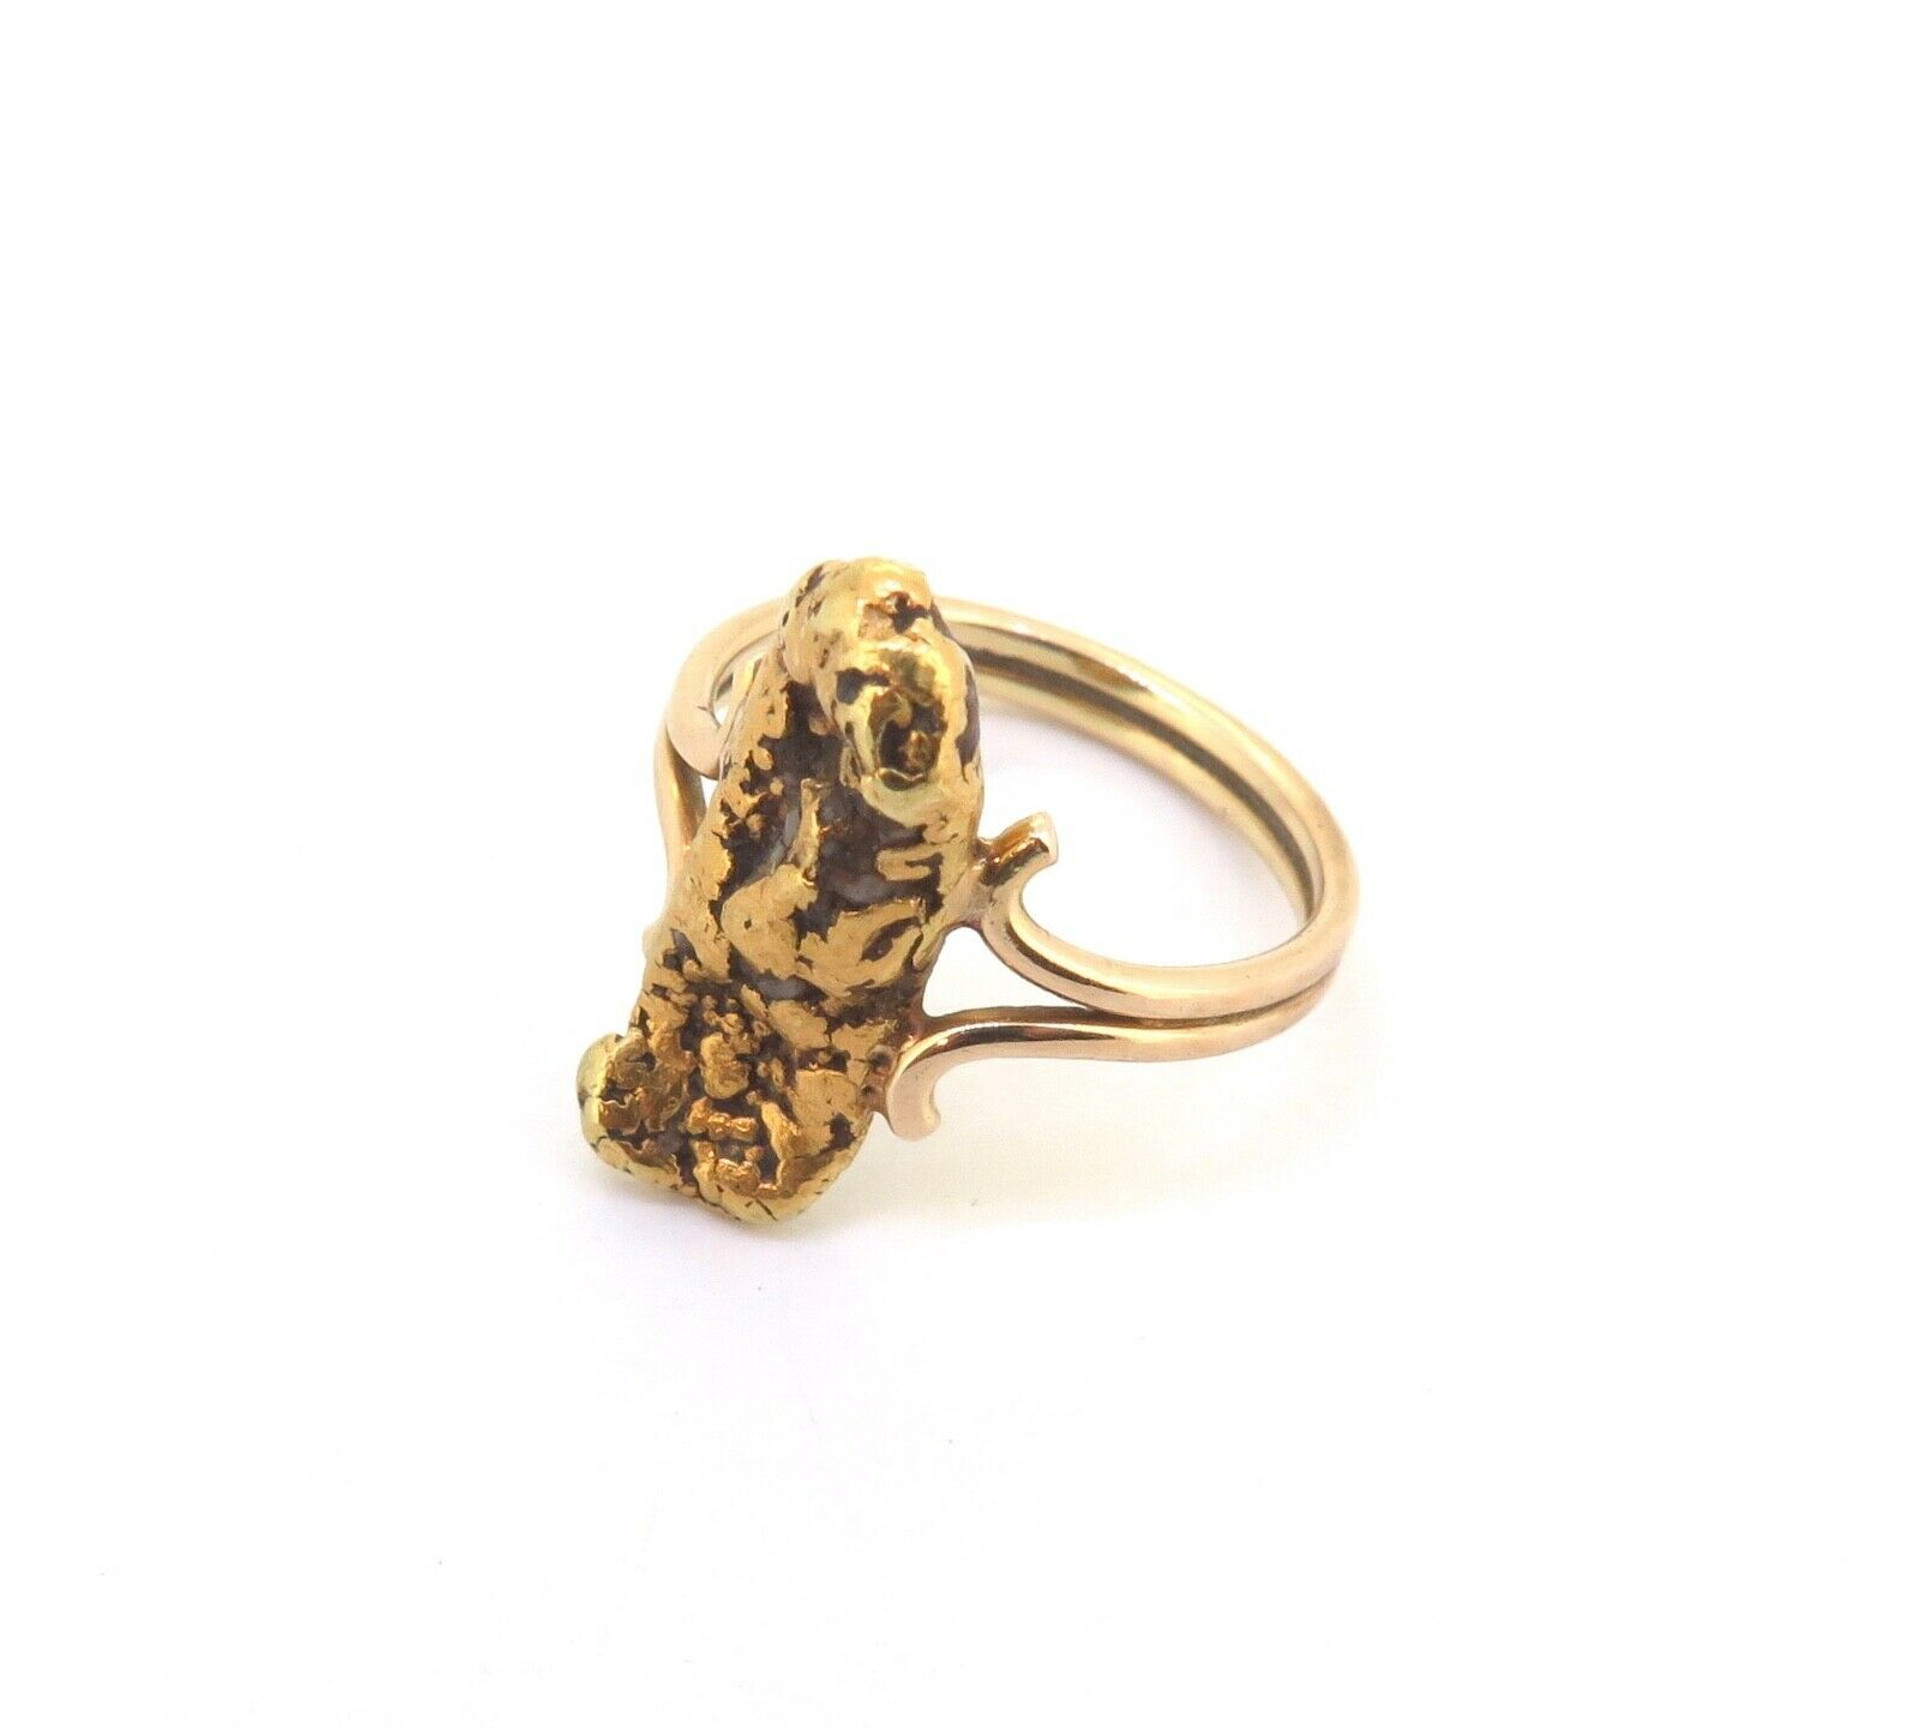 Antique Collectable 22ct Golden Nugget Ring & 18ct Yellow ...